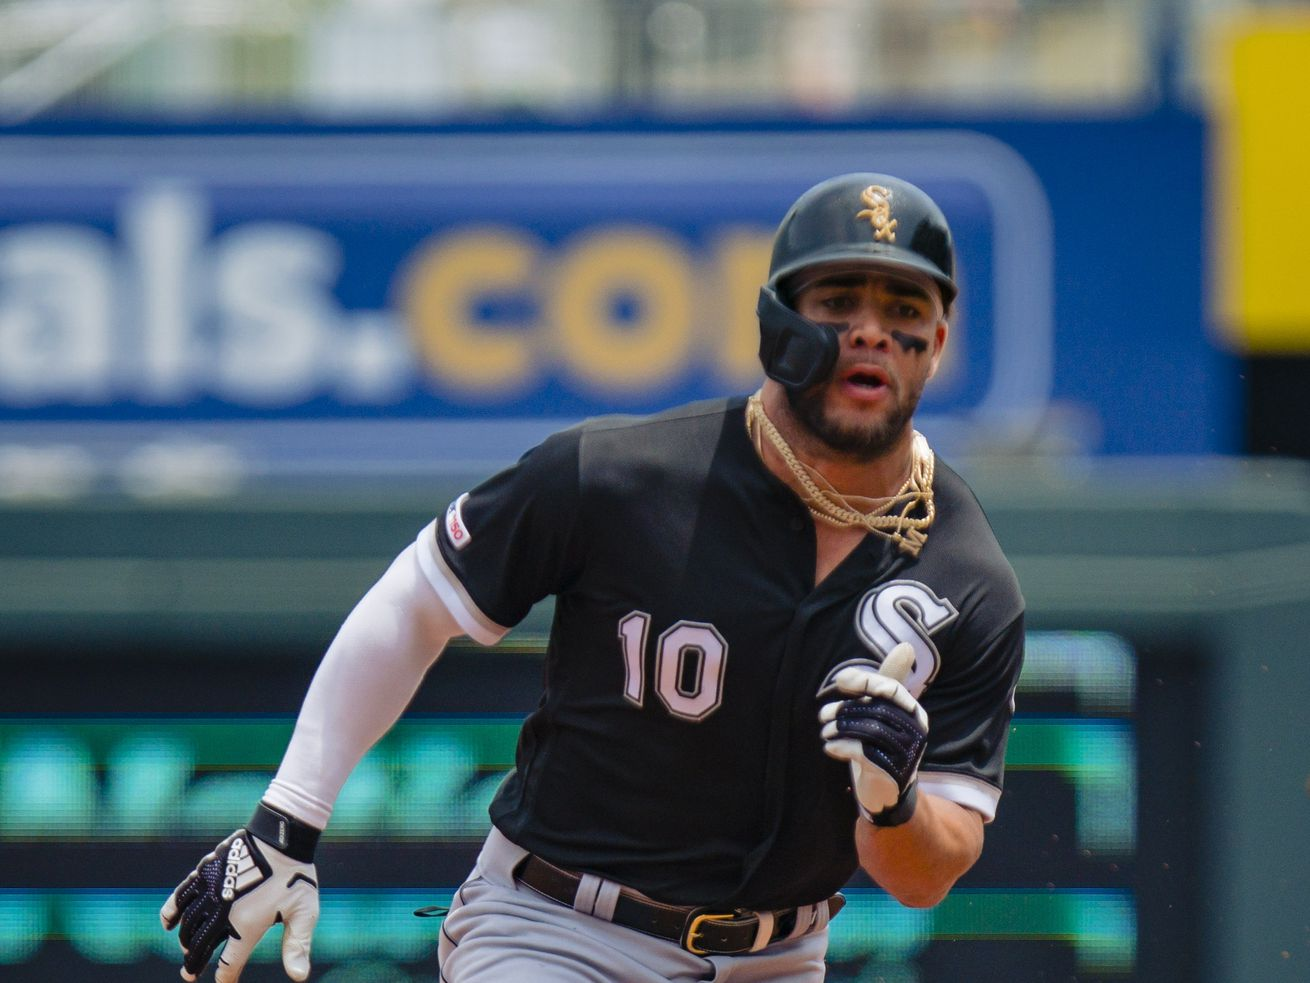 White Sox third baseman Yoan Moncada, who missed his third consecutive game Friday with back tightness, is hitting .295 with 12 home runs, 39 RBI and five stolen bases.